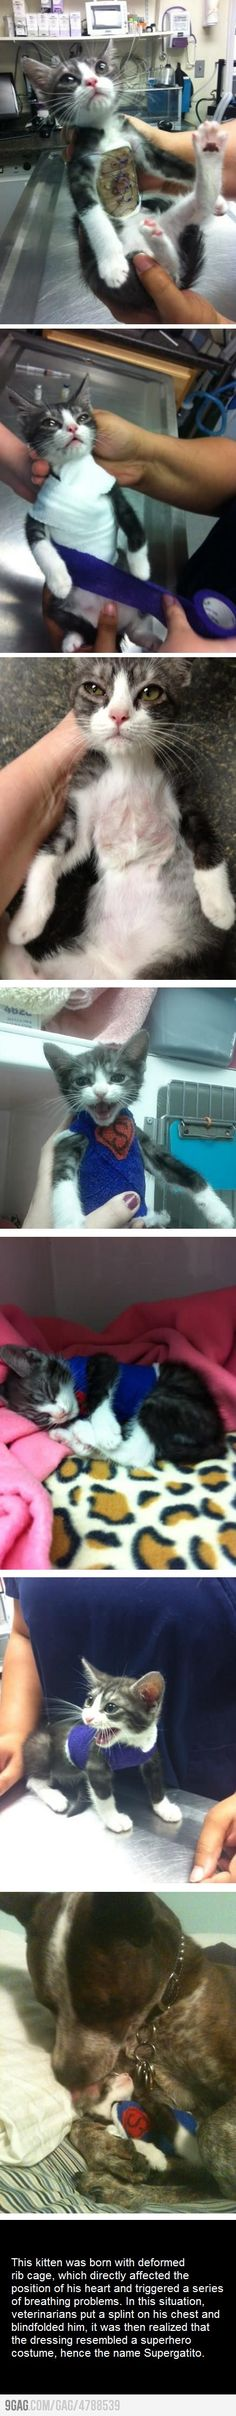 So sad.... Poor kitty...